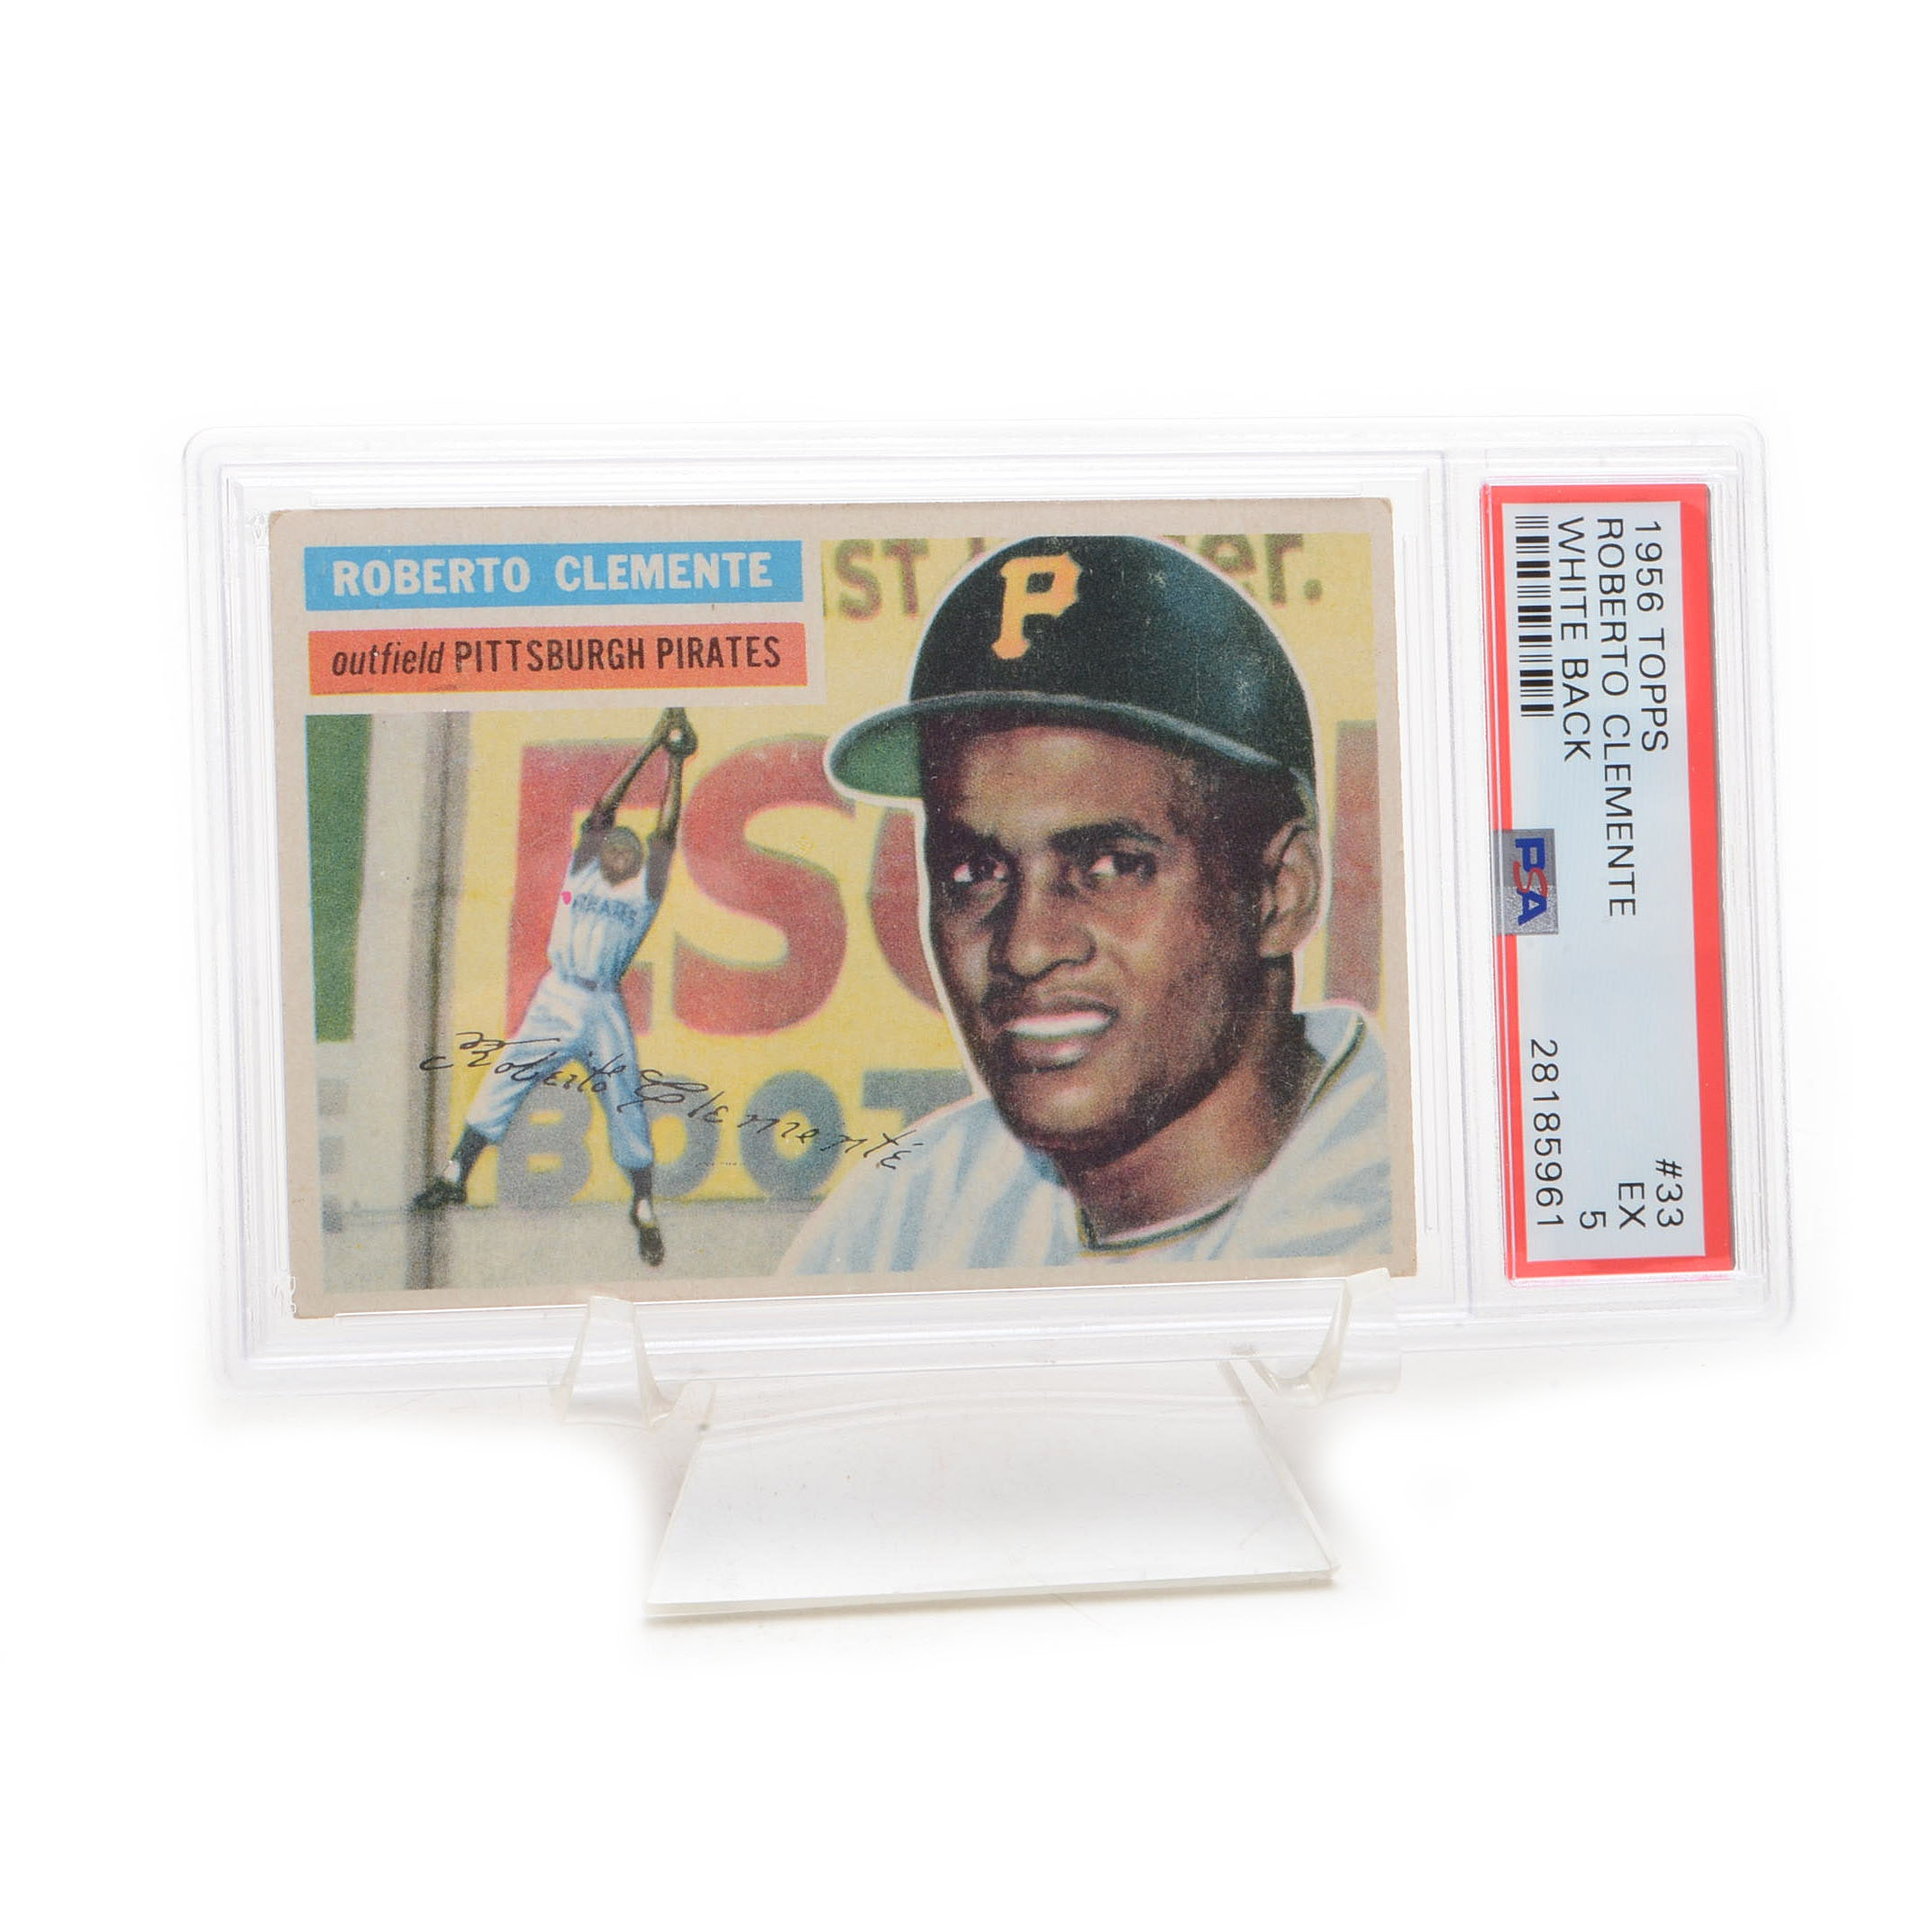 1956 Roberto Clemente Pittsburgh Pirates Topps PSA Graded Card